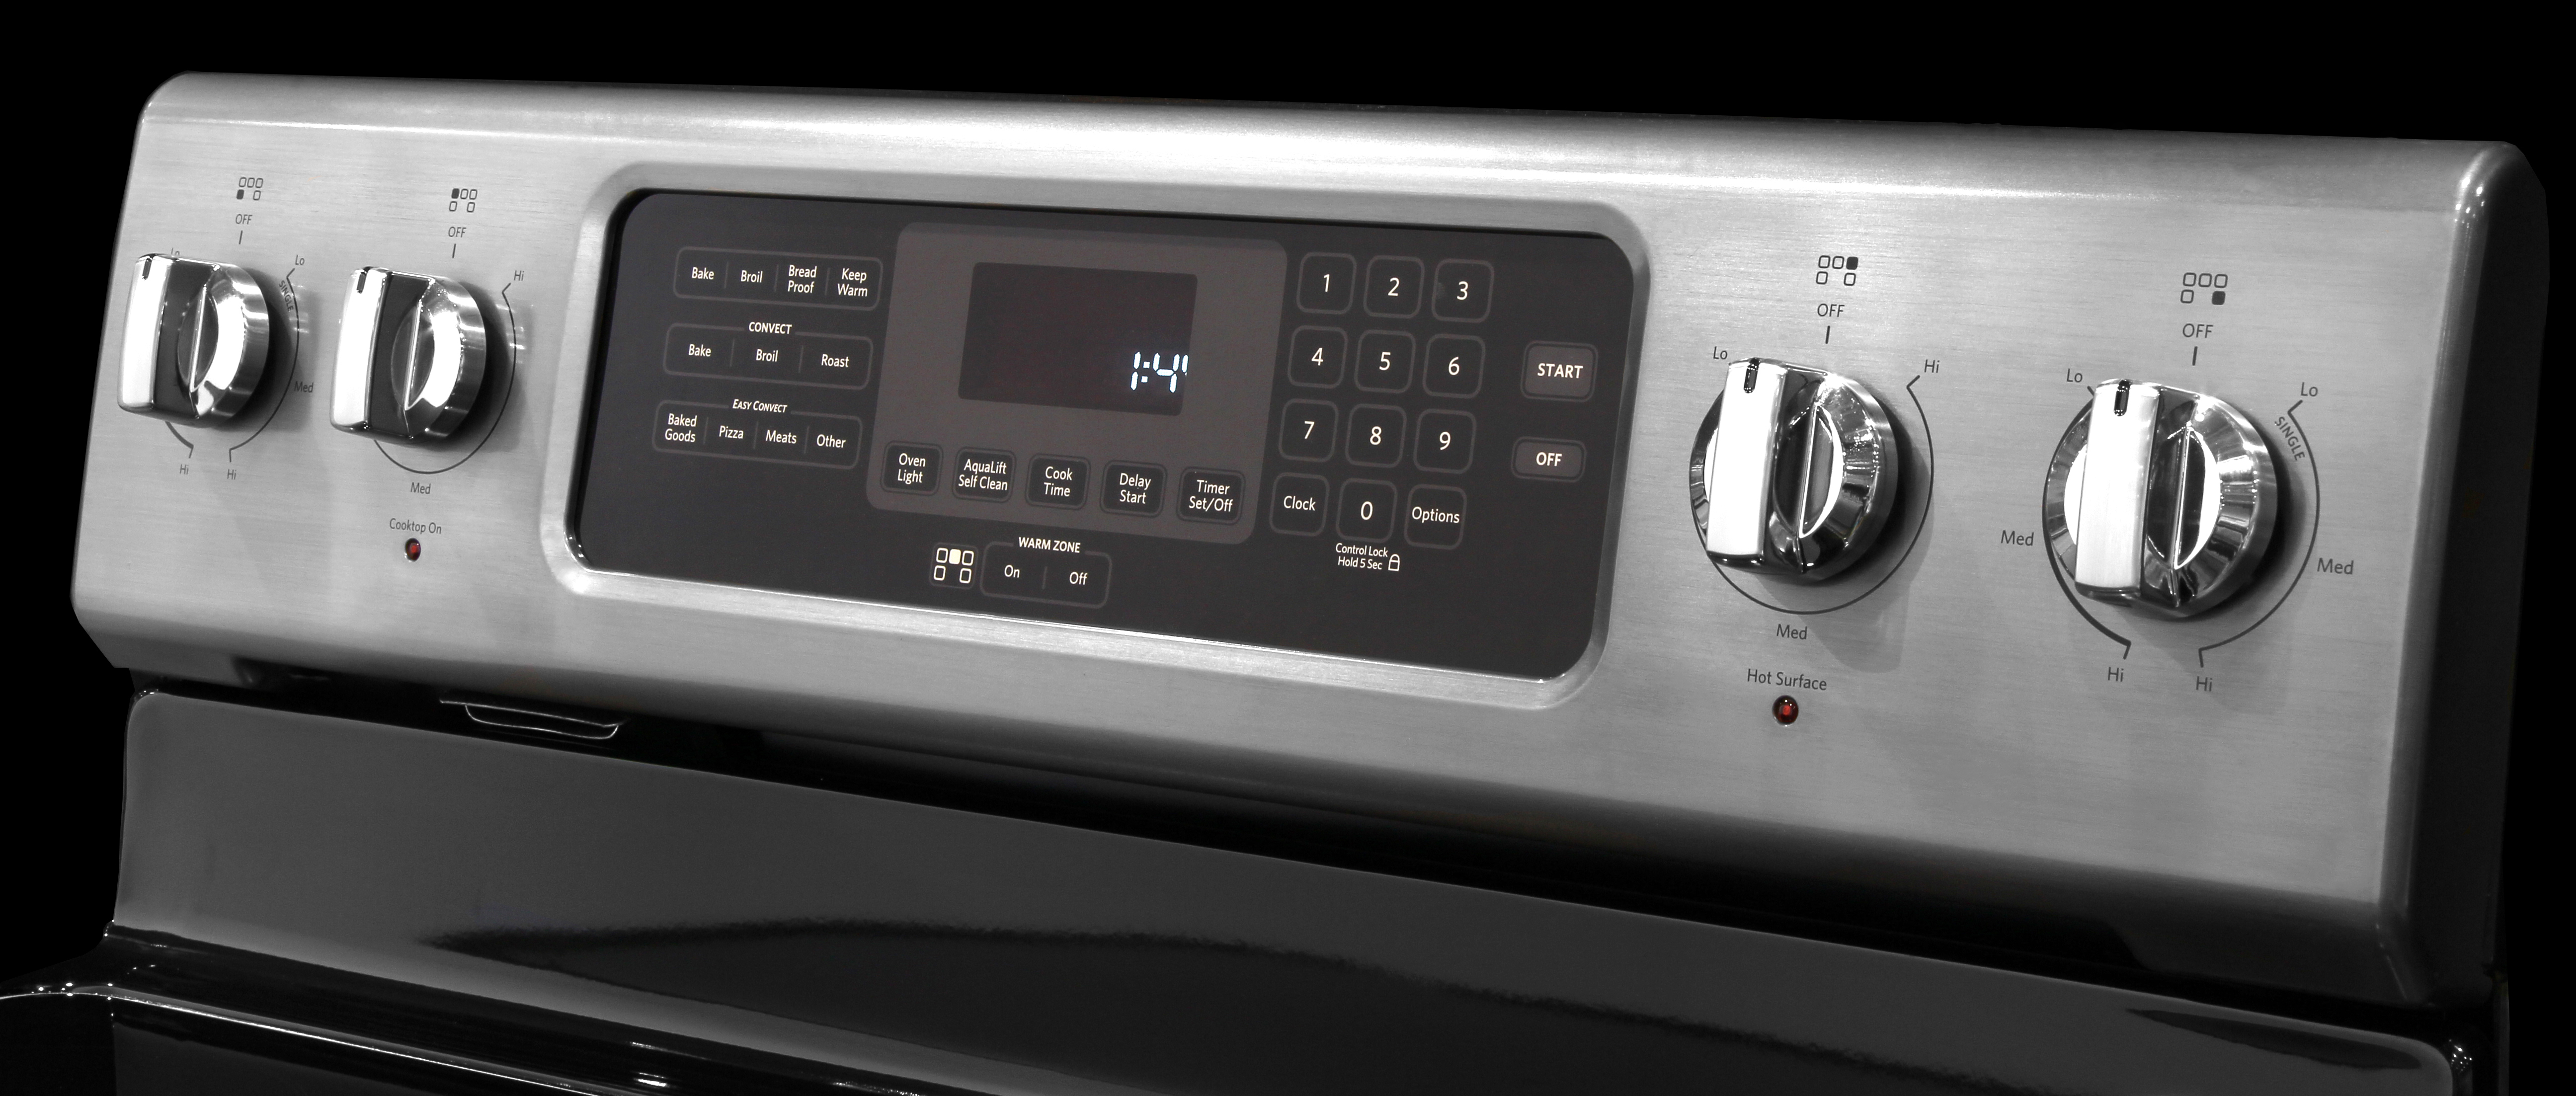 Kitchenaid kers202bss electric range review ovens - Reviews on electric stoves ...